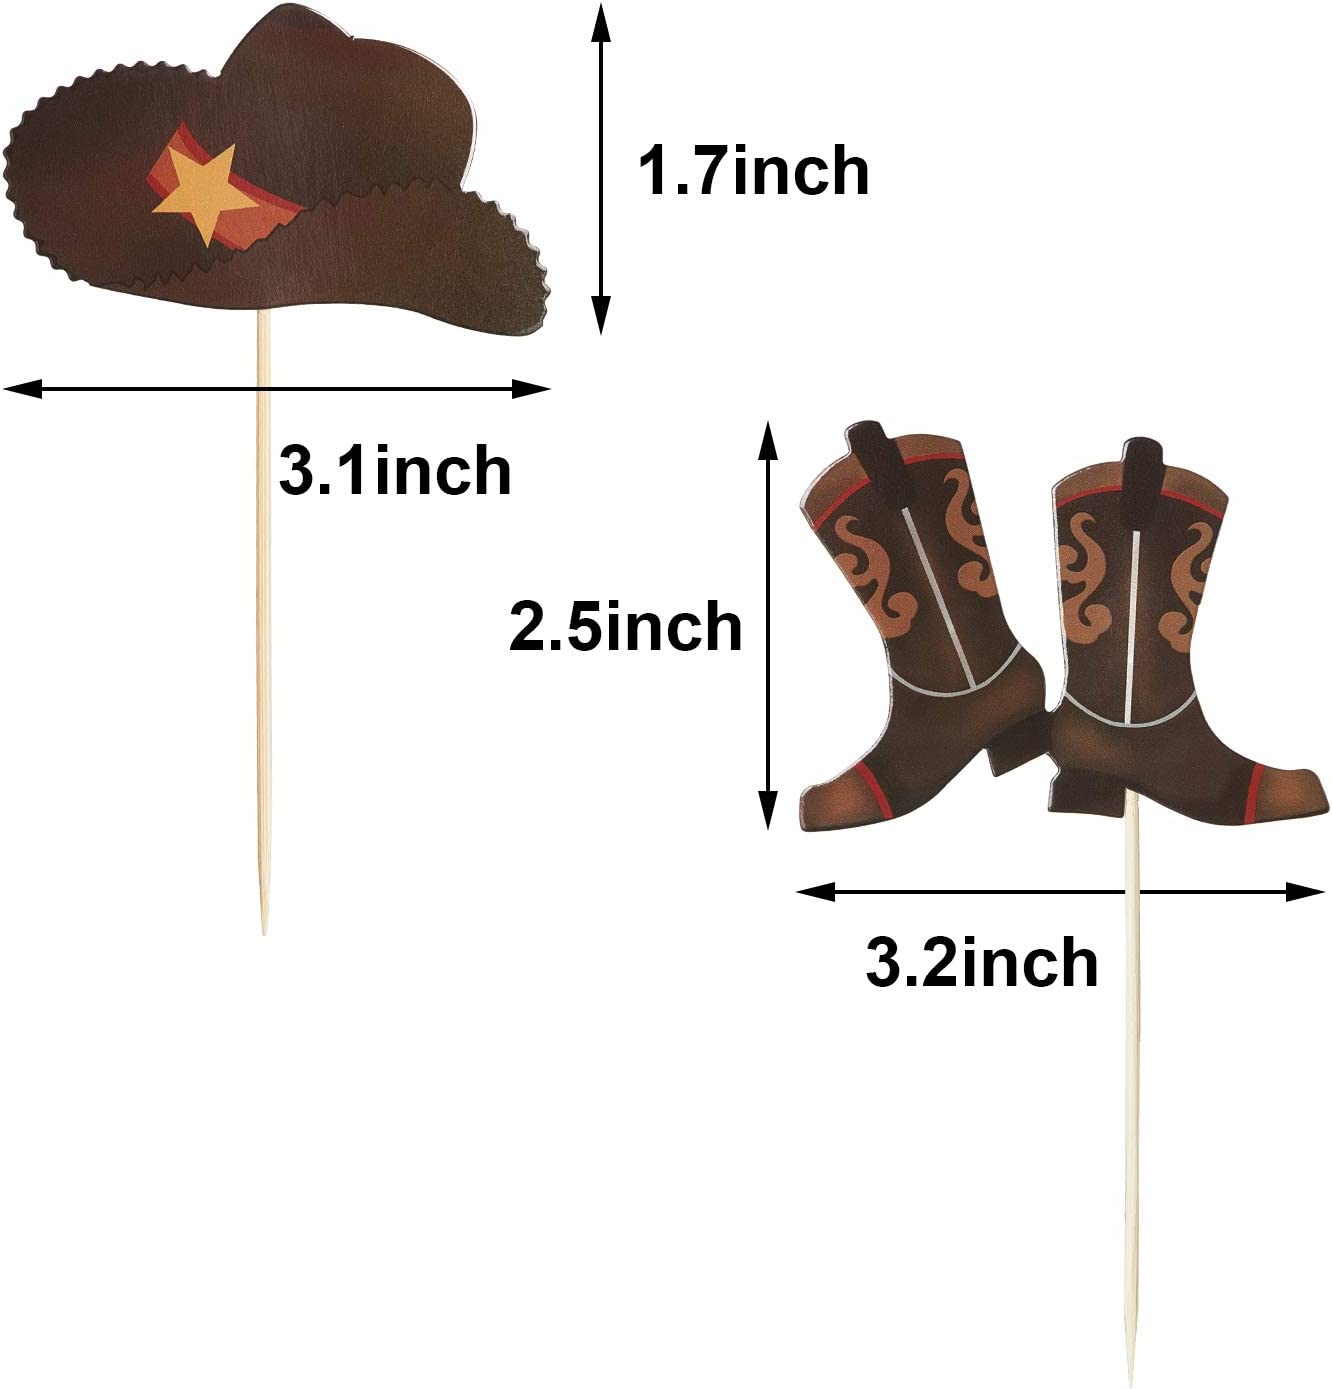 Hat Cowgirl Apron Country Cowboy Saddle Leather Boots Western BBQ Cookout Star Sheriff Badge Adjustable Straps